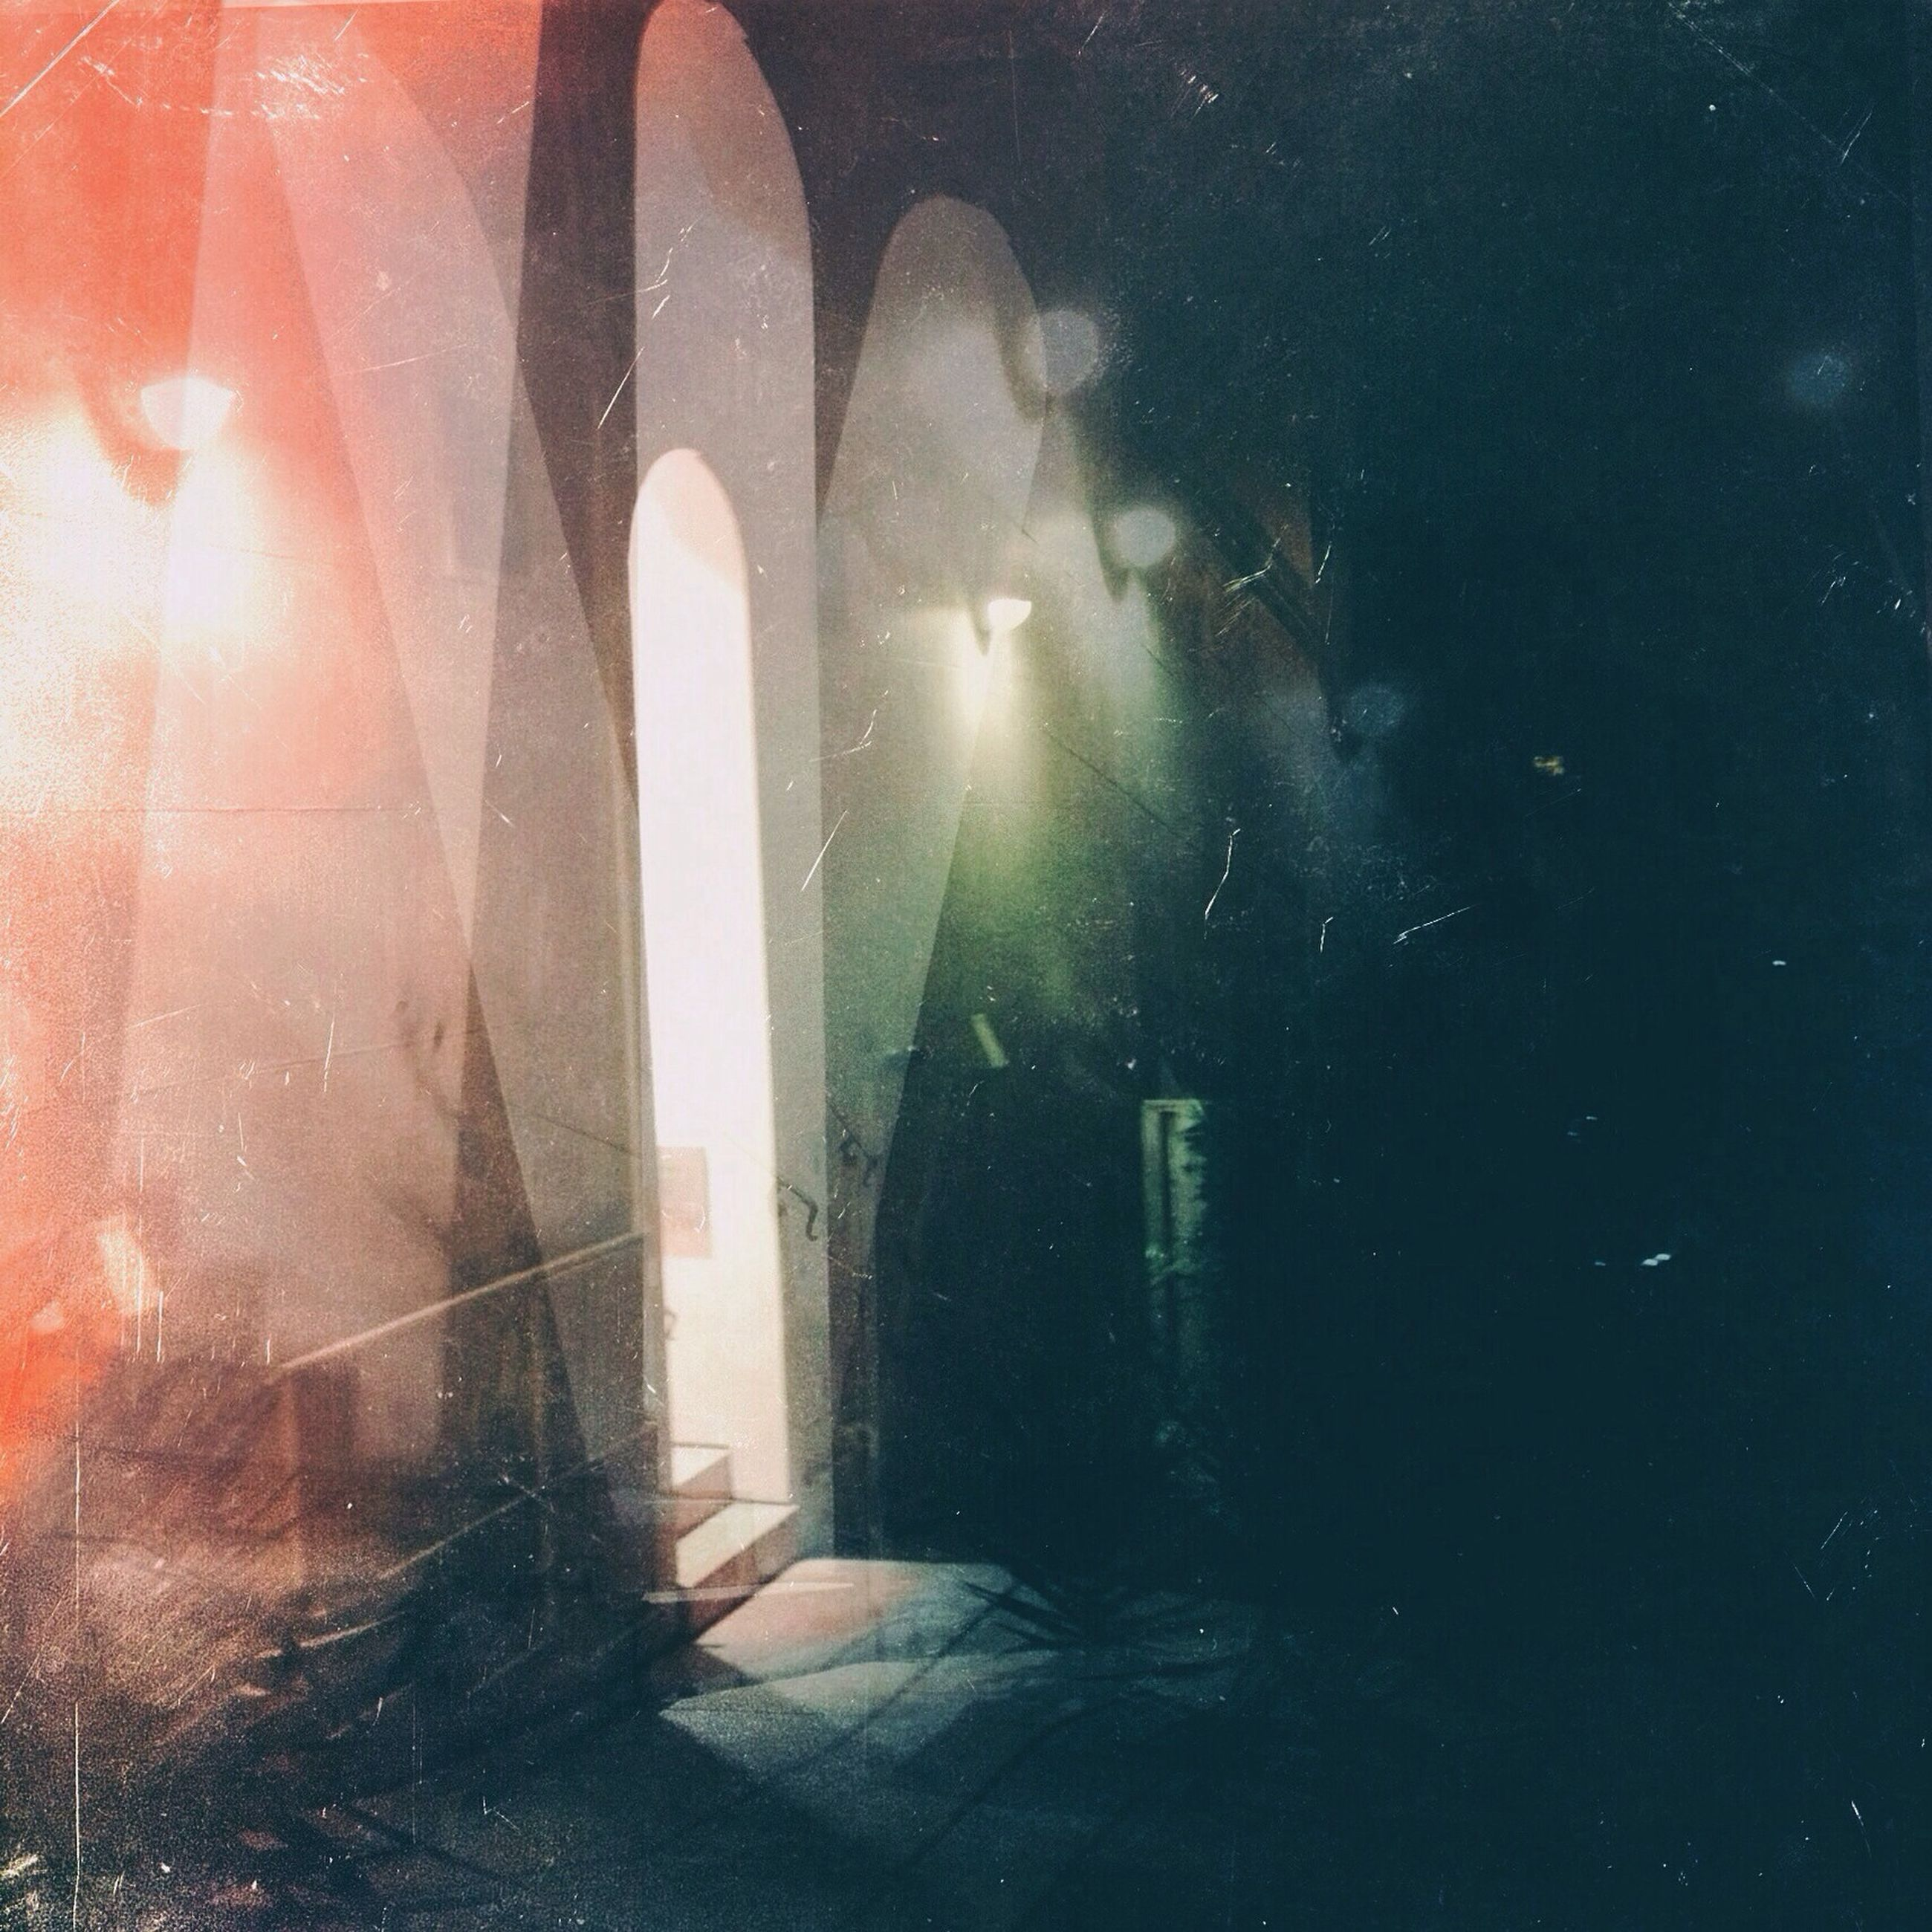 night, illuminated, window, dark, sunlight, indoors, reflection, water, built structure, no people, shadow, silhouette, architecture, building exterior, glass - material, light - natural phenomenon, street, wet, lens flare